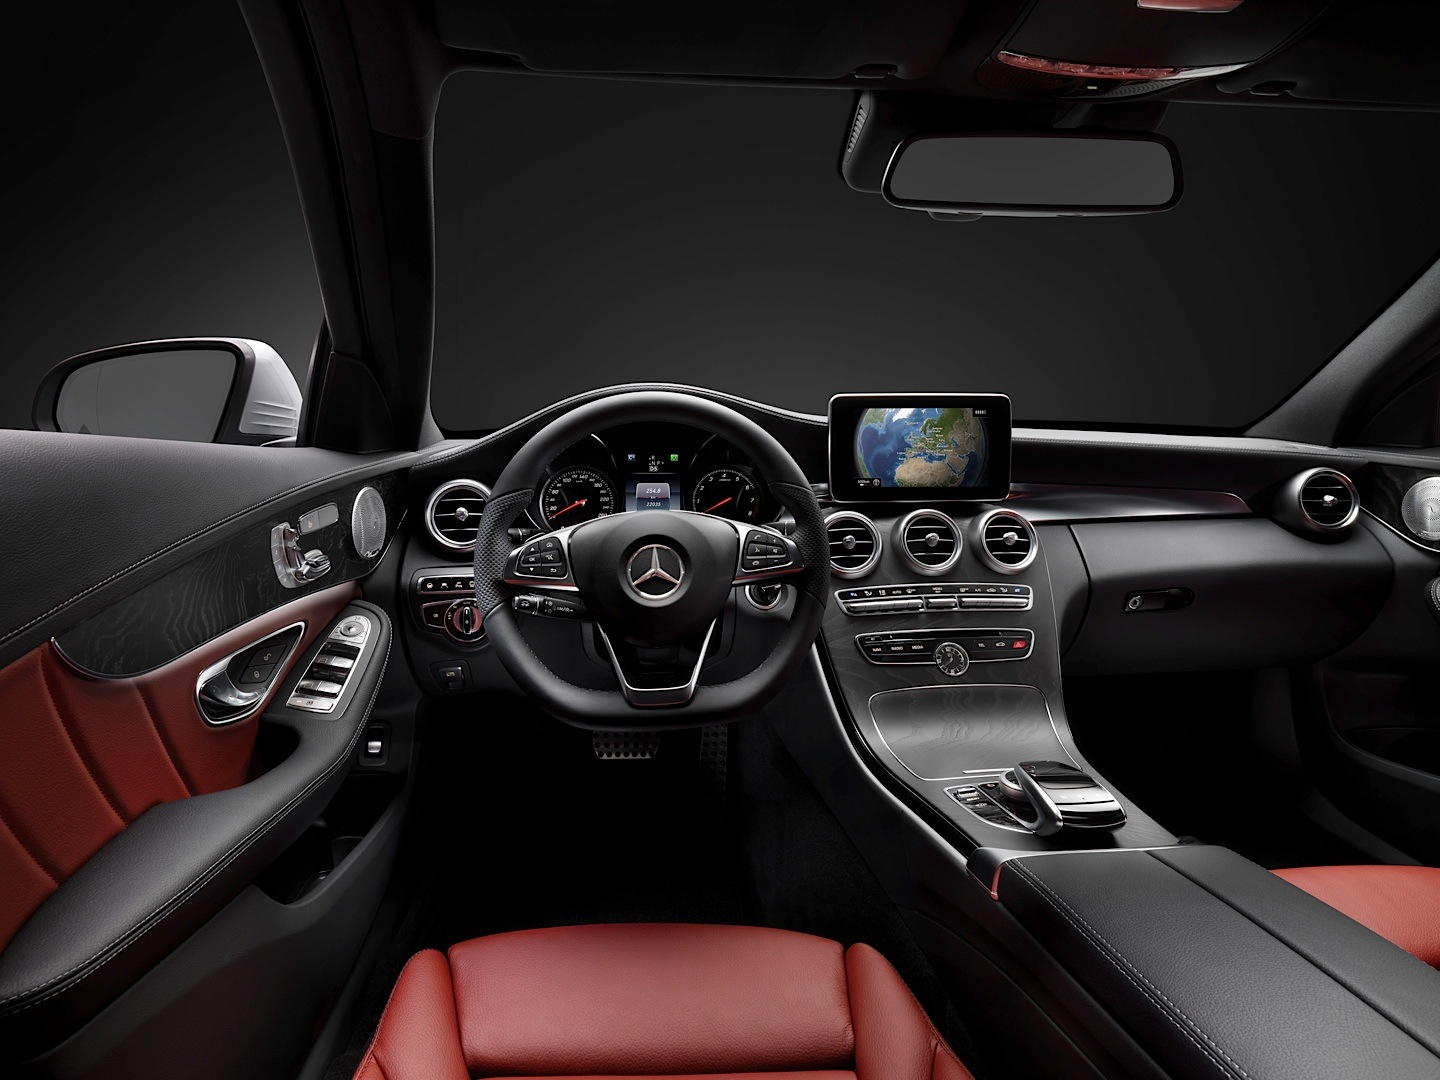 check-out-the-first-official-footage-with-the-new-c-class-w205-video-1080p-16